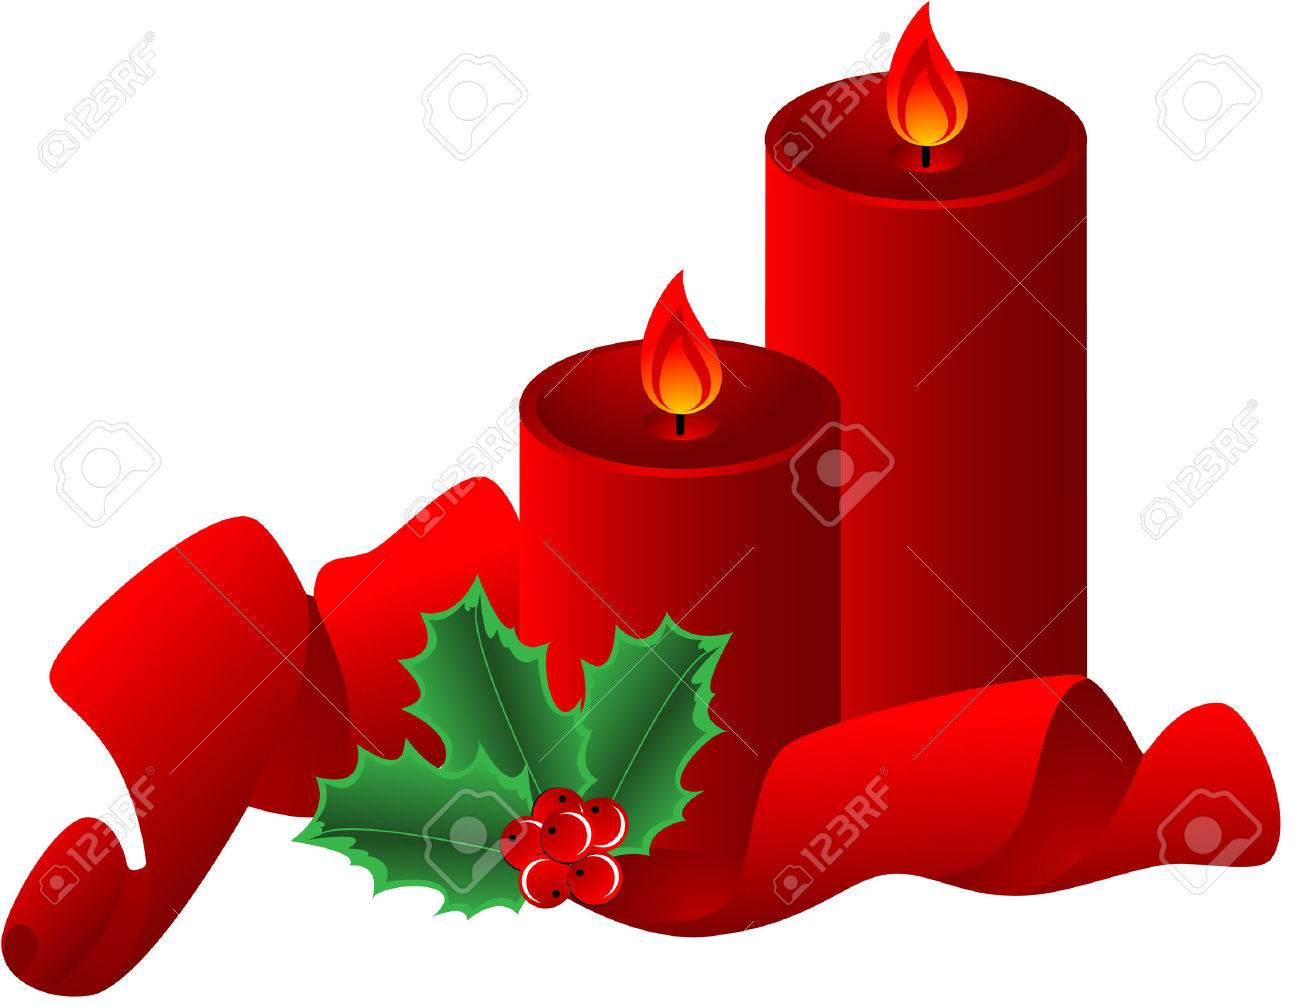 Christmas composition  with red candle, ribbon and Holly Border, isolated.  illustration Stock Vector - 7557896